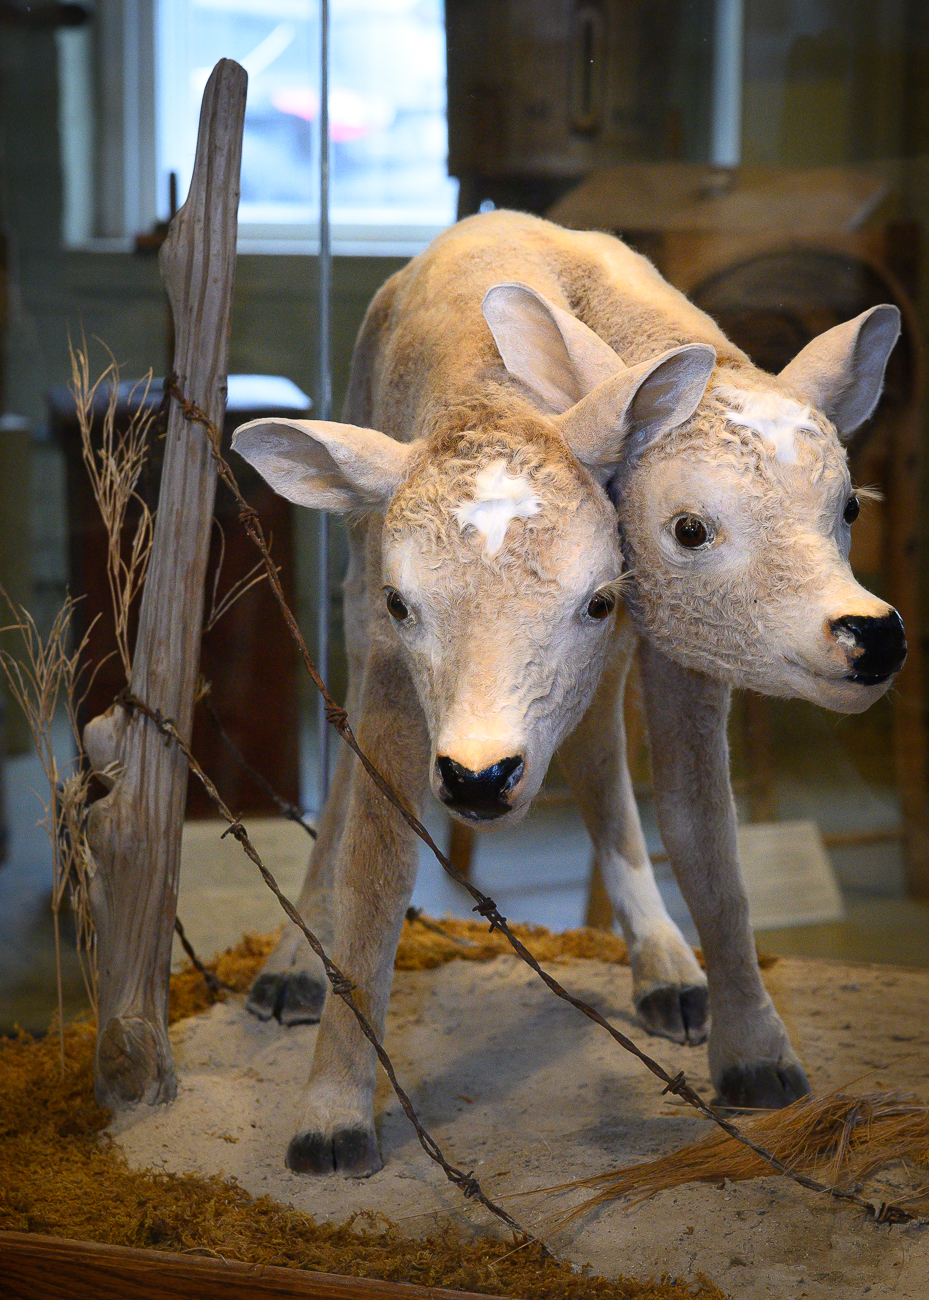 The second piece is a taxidermied, two-headed calf. It was born on an Indiana farm and only lived for 45 minutes. Because livestock born with polycephaly are so rare, the calf was preserved and given to the museum. / Image: Phil Armstrong, Cincinnati Refined // Published: 1.7.20